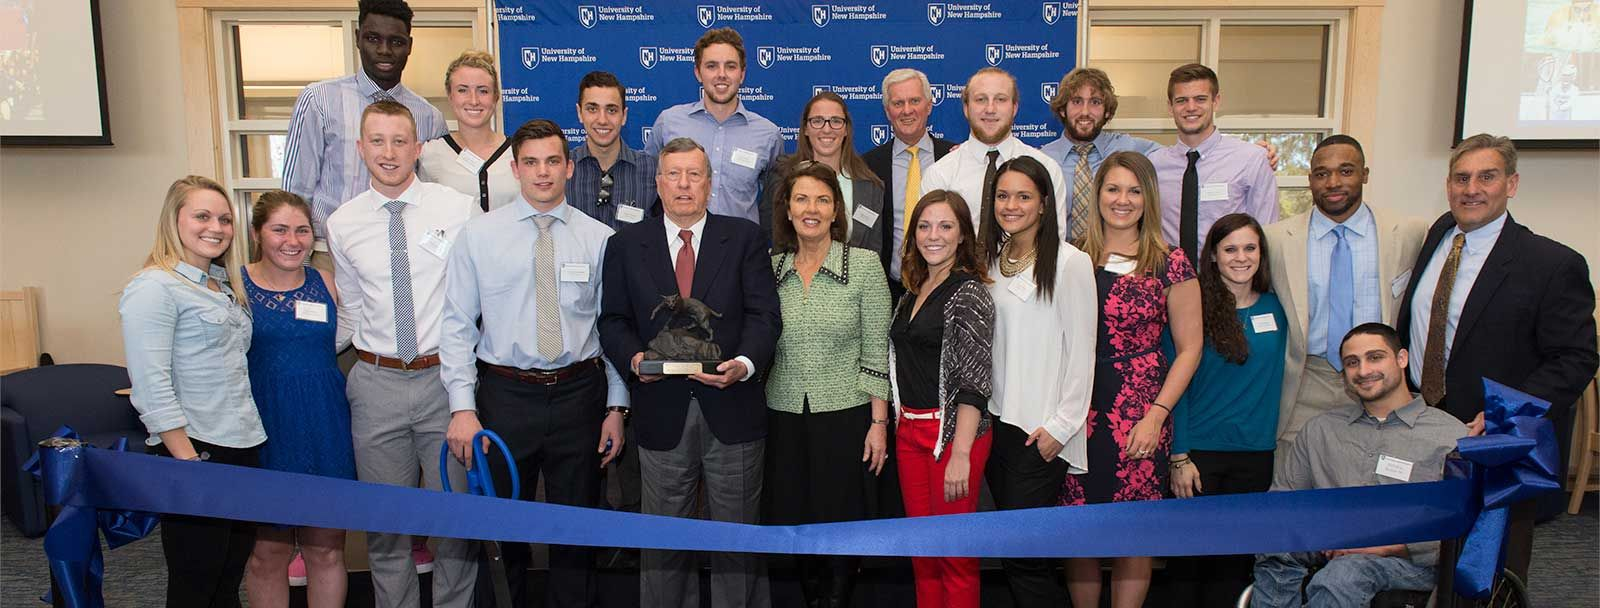 UNH Watkins Center for Student-Athlete Excellence